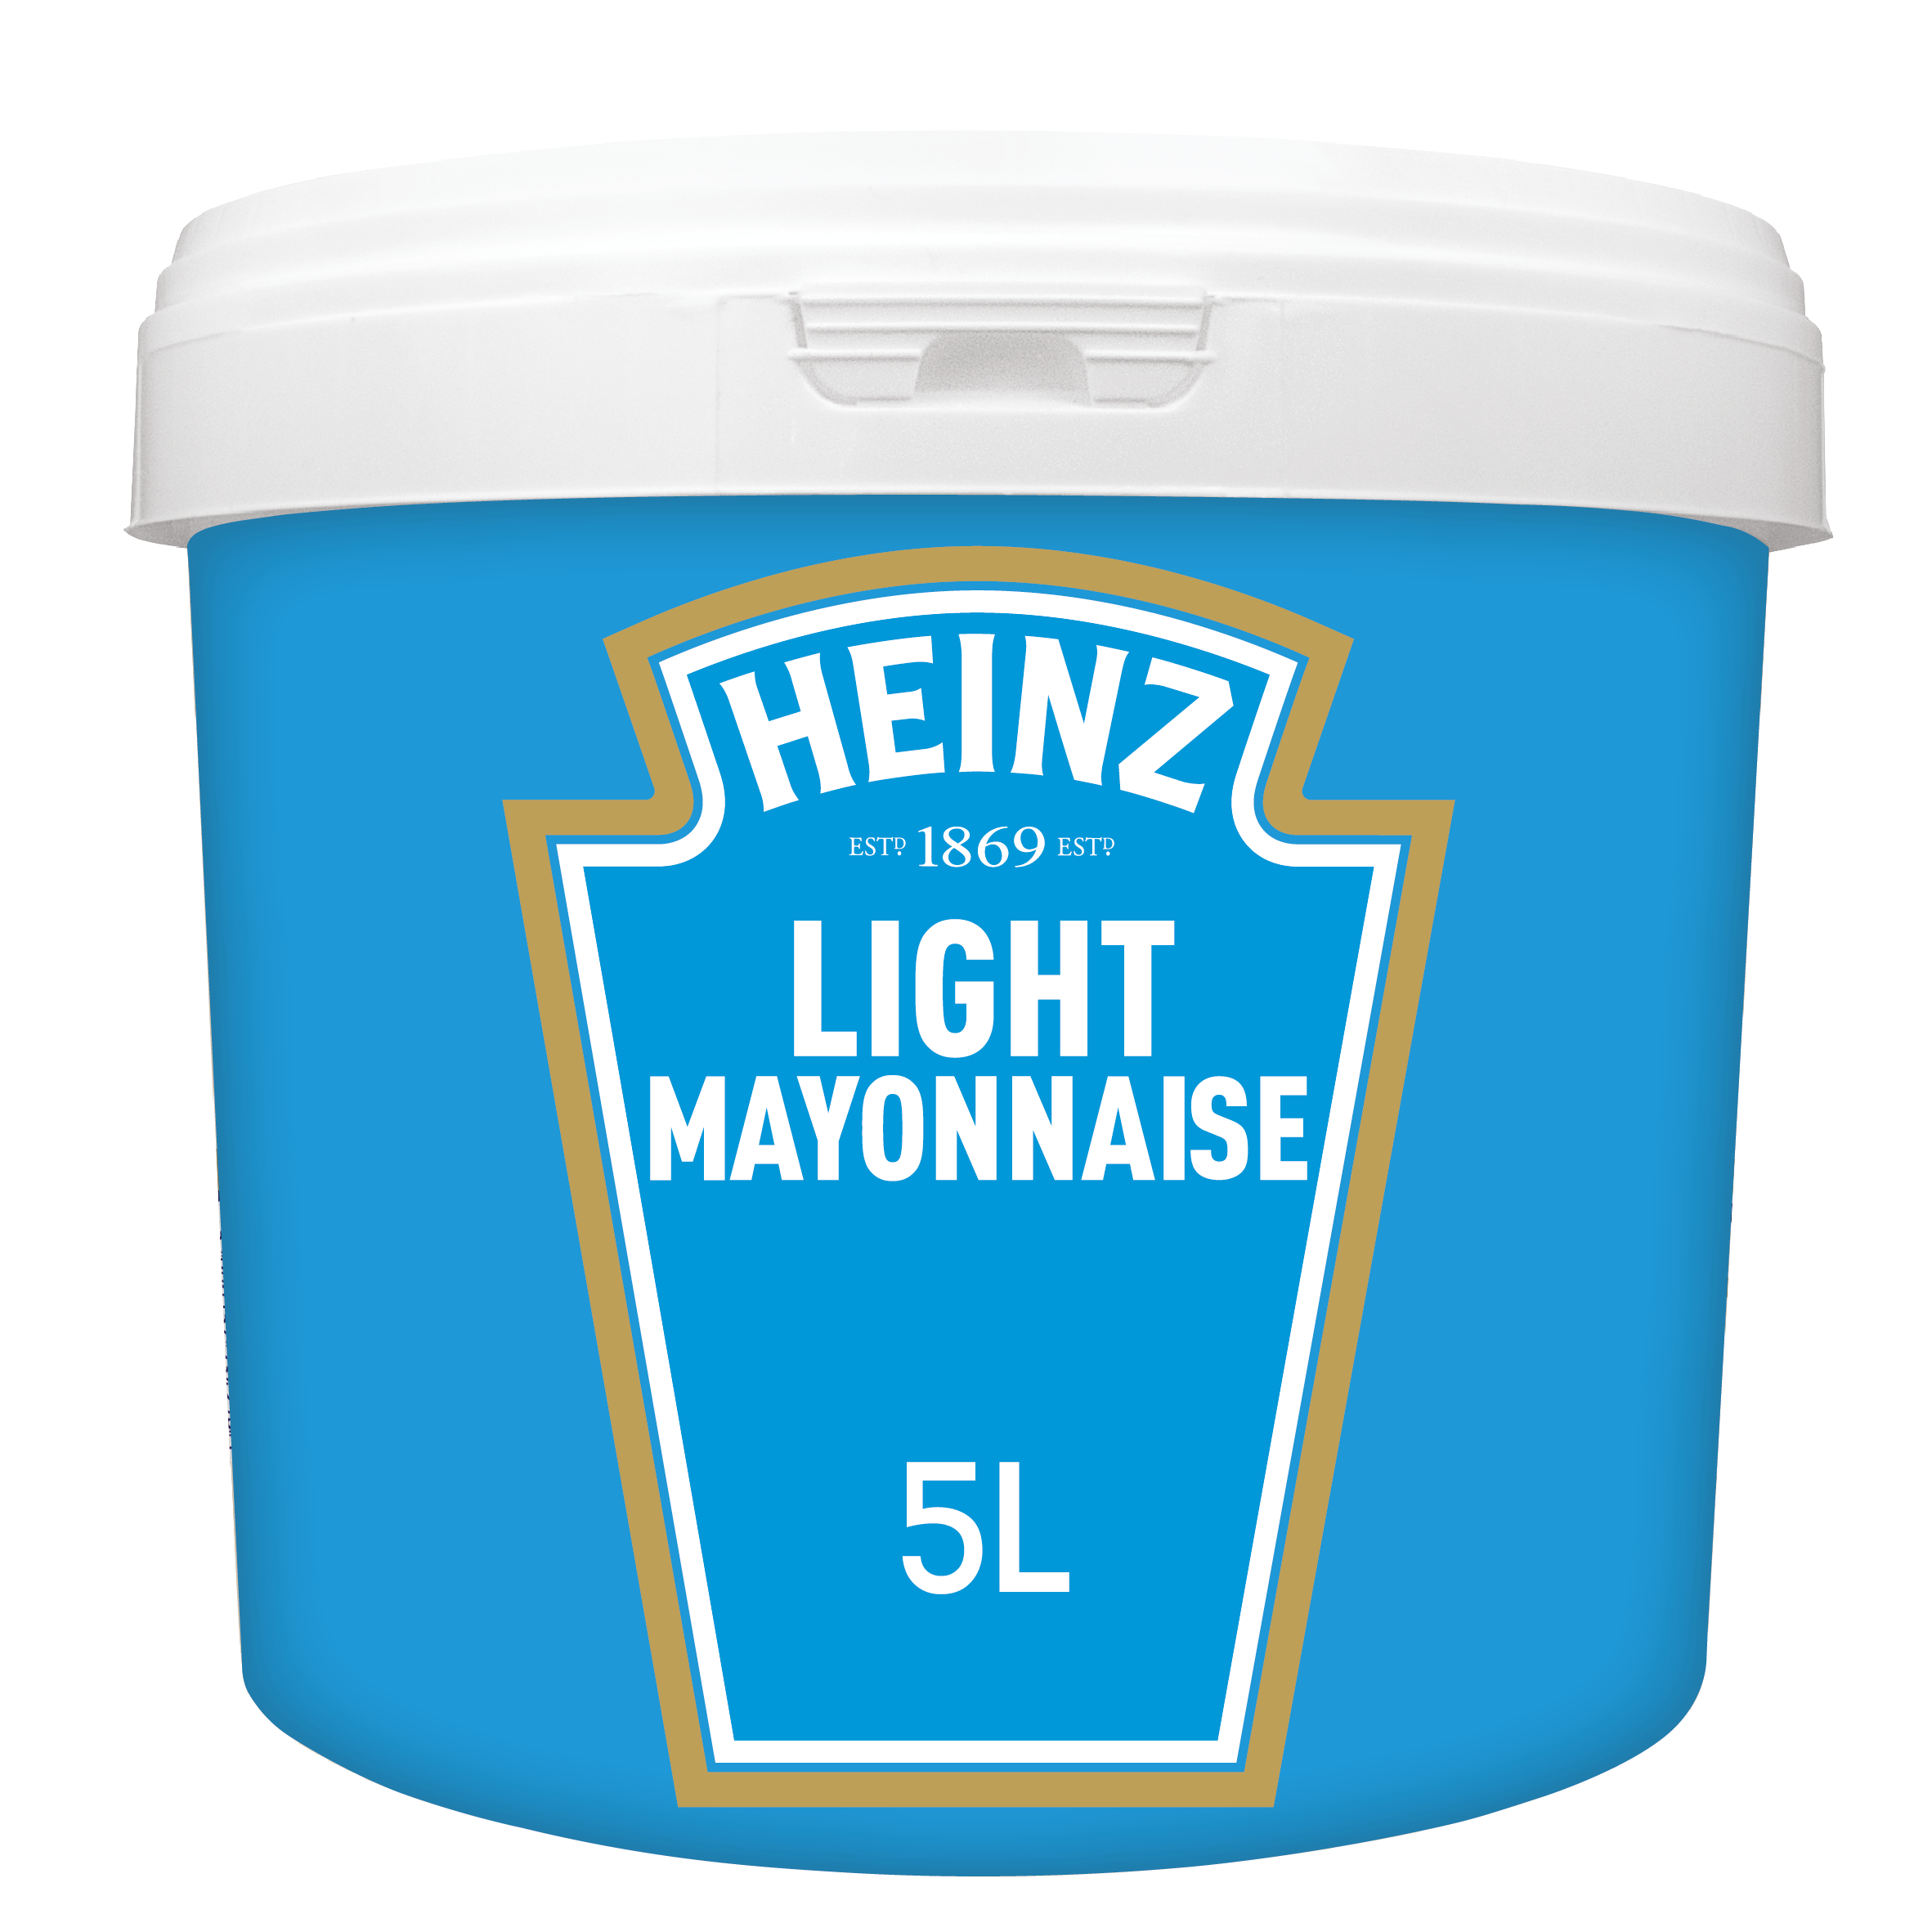 Heinz Light Mayonnaise 5L Pail image